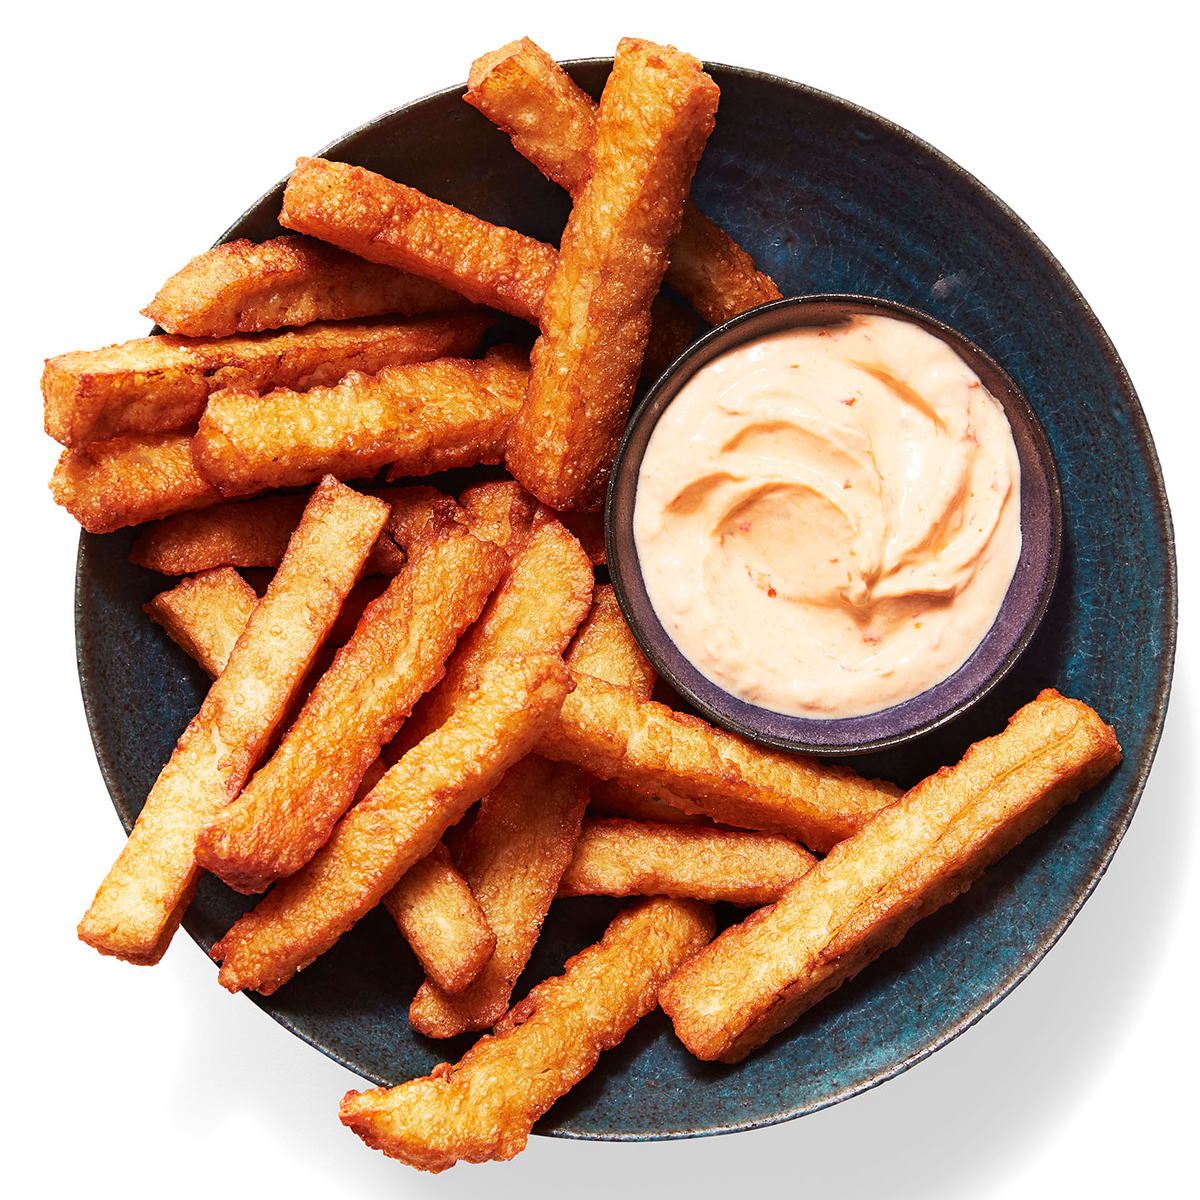 halloumi fries with dip on plate